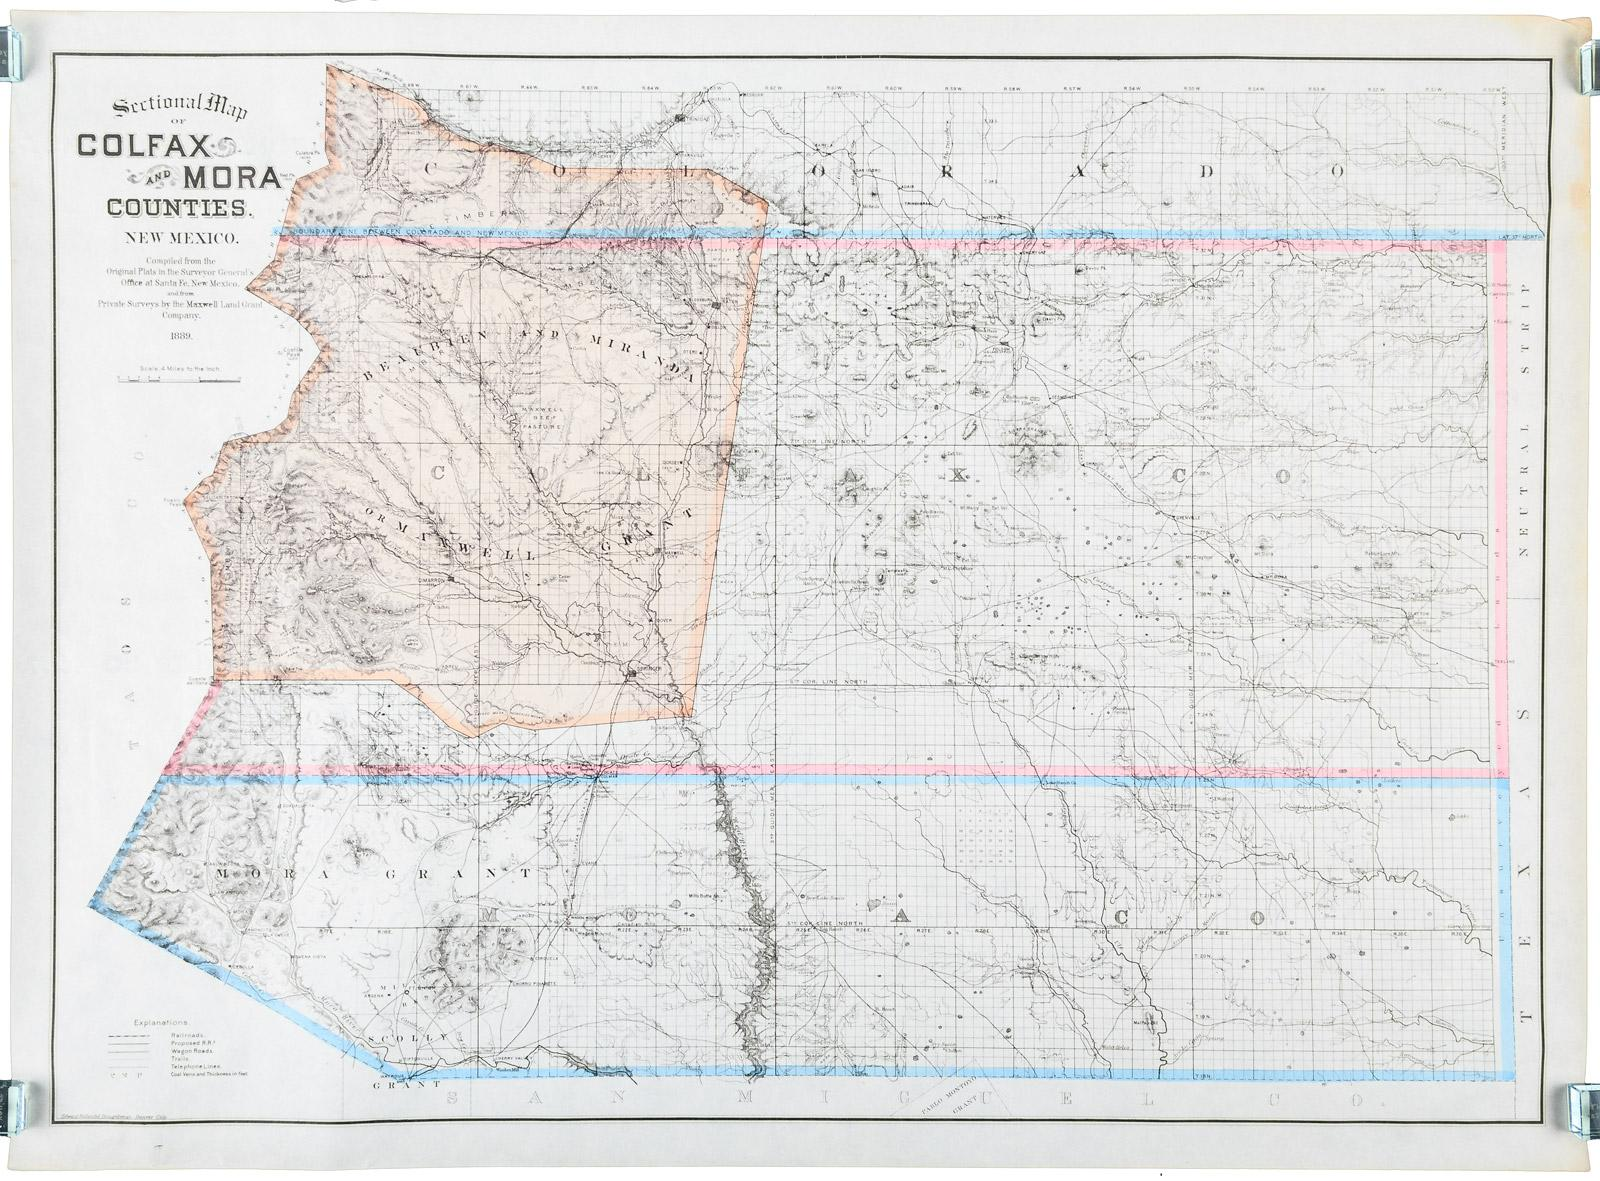 Sectional Map Of Colfax And Mora Counties New Mexico Compiled From